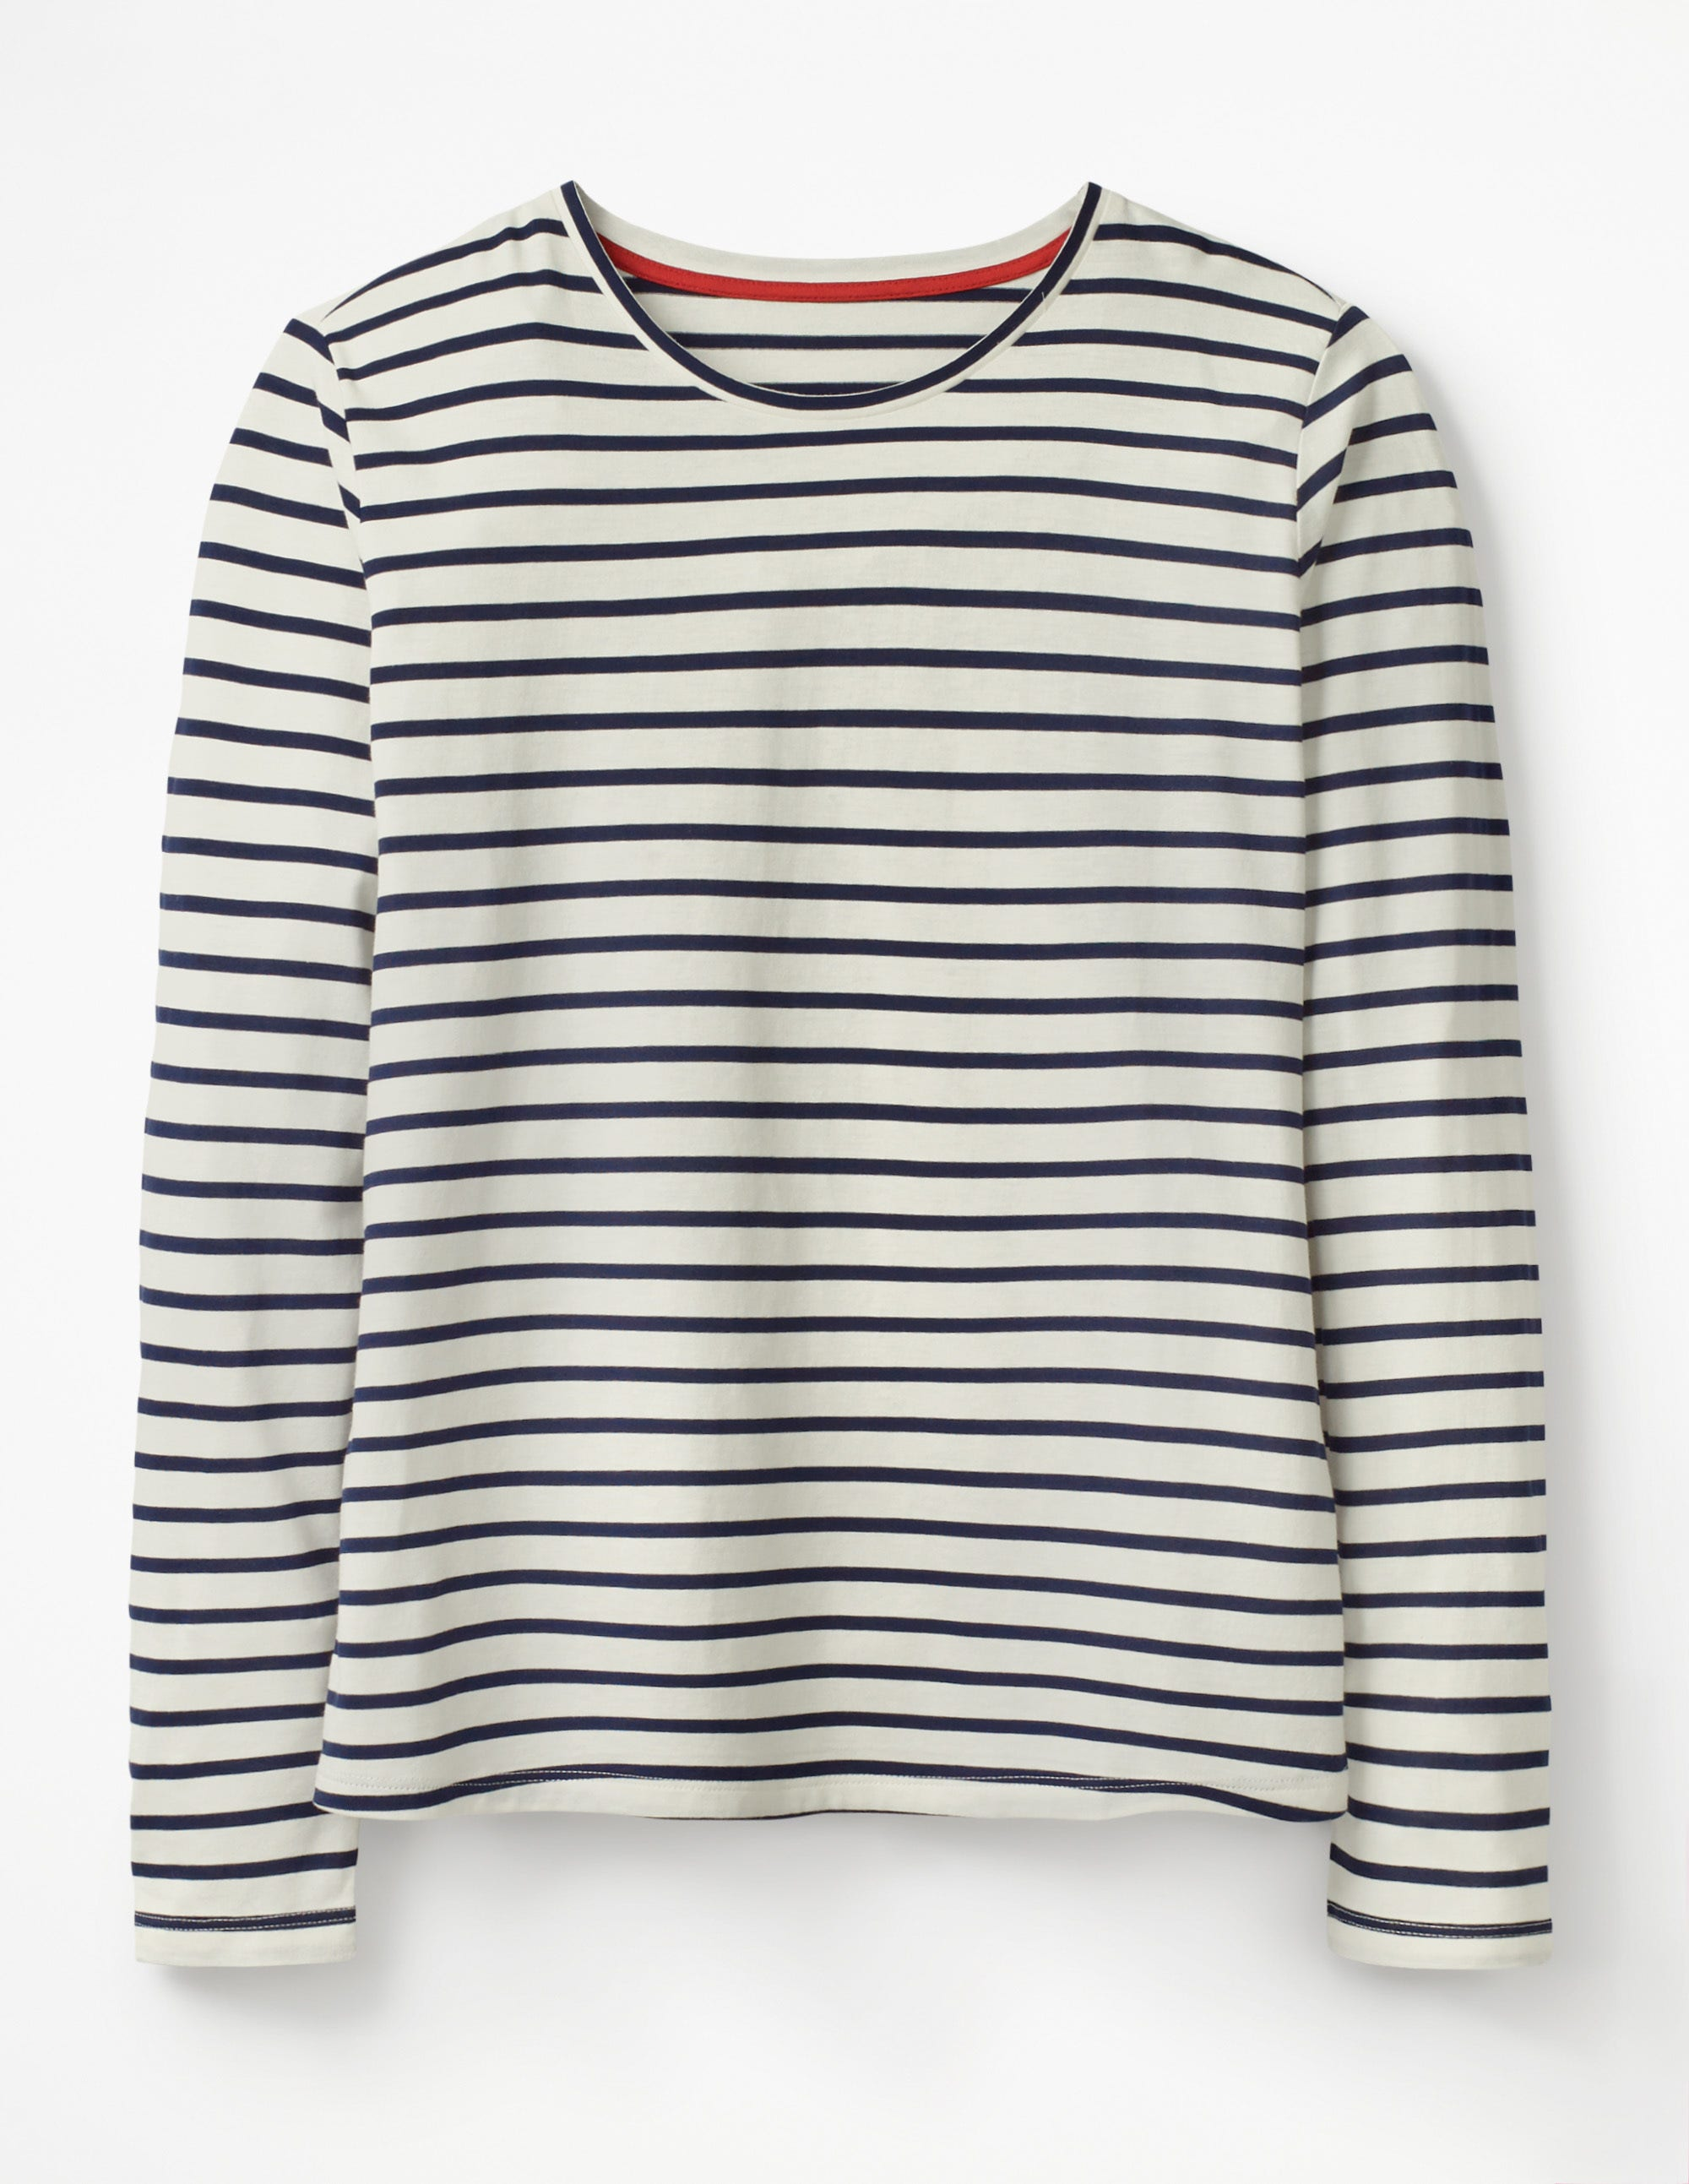 Clothing, Shoes & Accessories Boden Sweater Size 6 Color Block Black White Soft Pullover Cotton Long Sleeve Women's Clothing